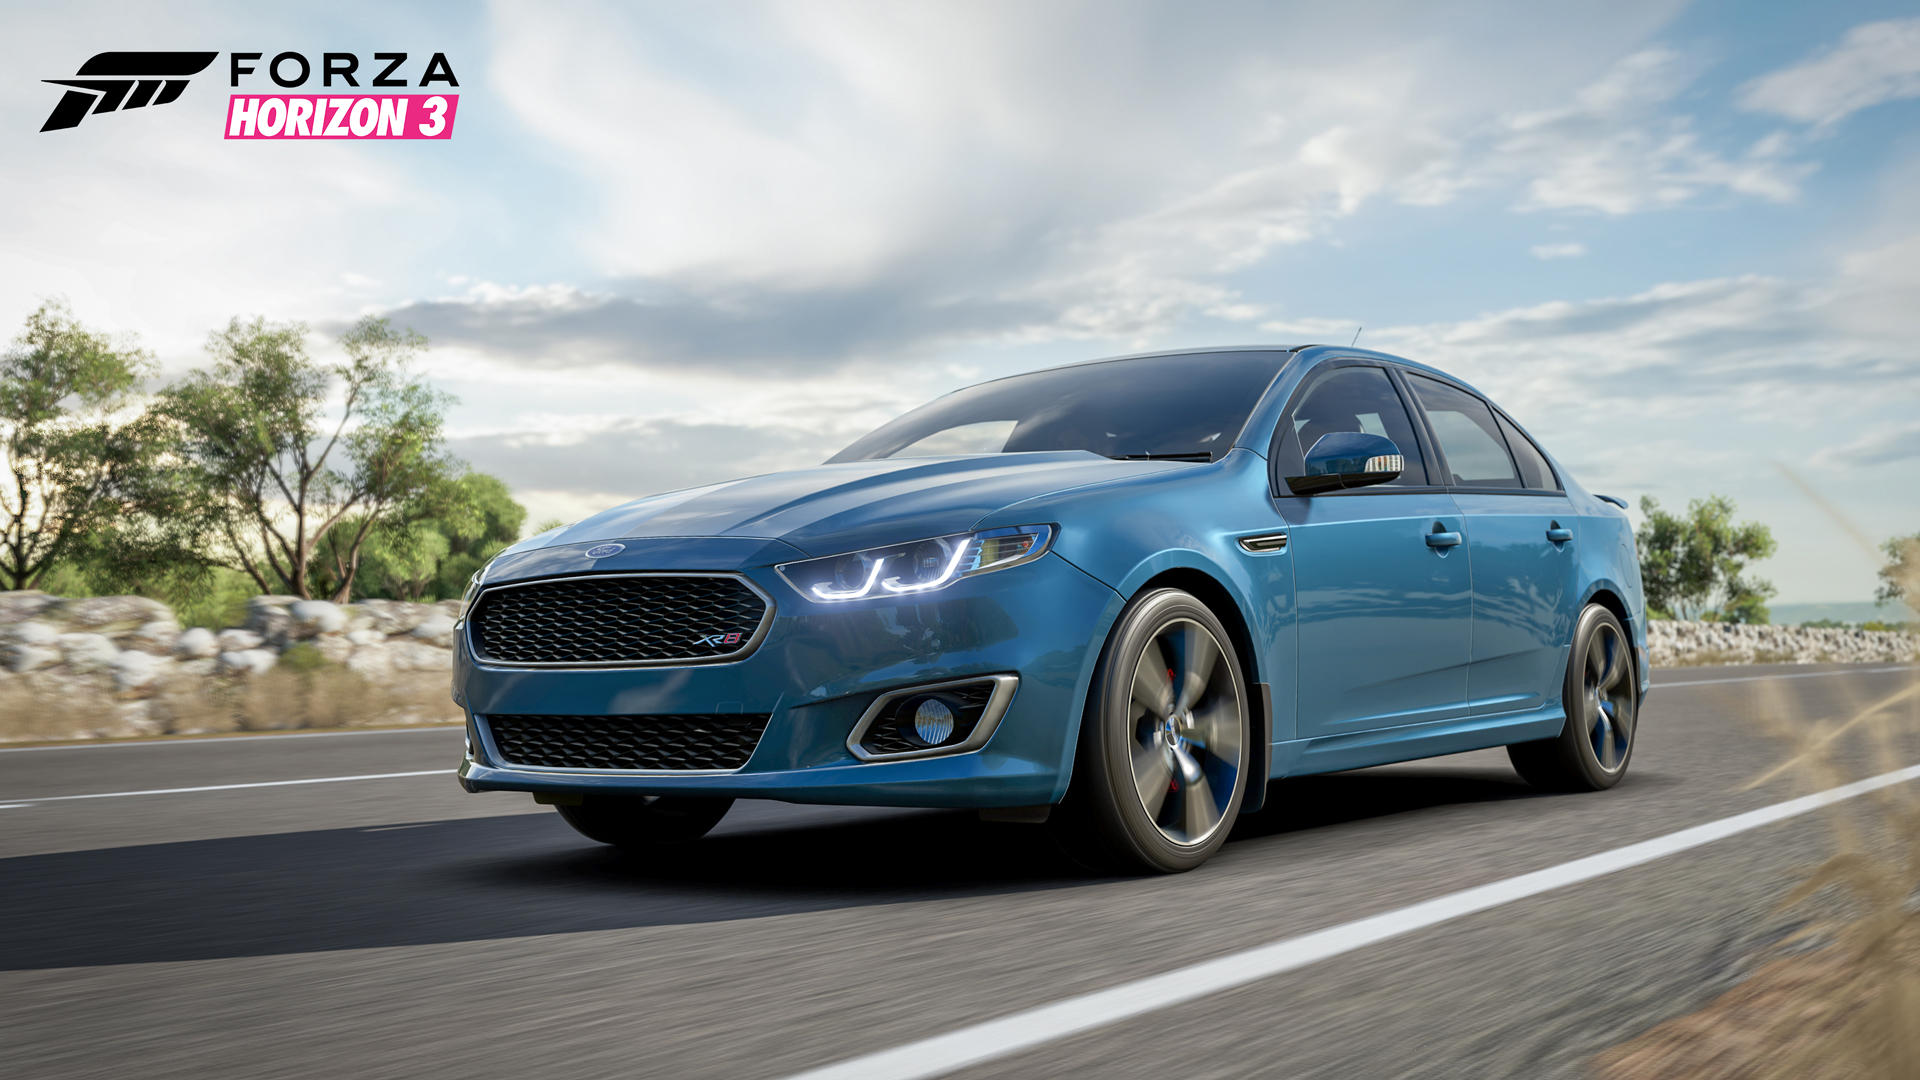 Forza horizon 3 wallpapers pictures images - Forza logo wallpaper ...